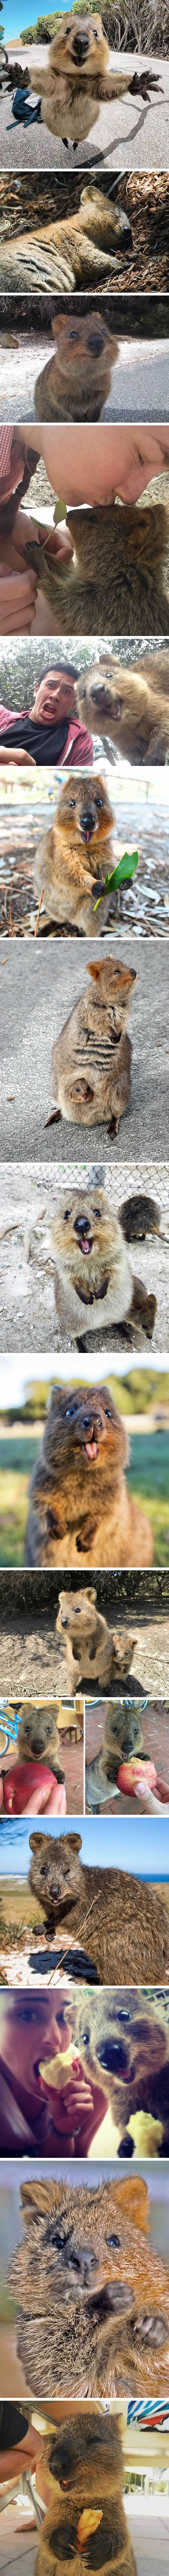 Snap-Happy Quokka Is The Most Playful Creature On The Planet - 9GAG